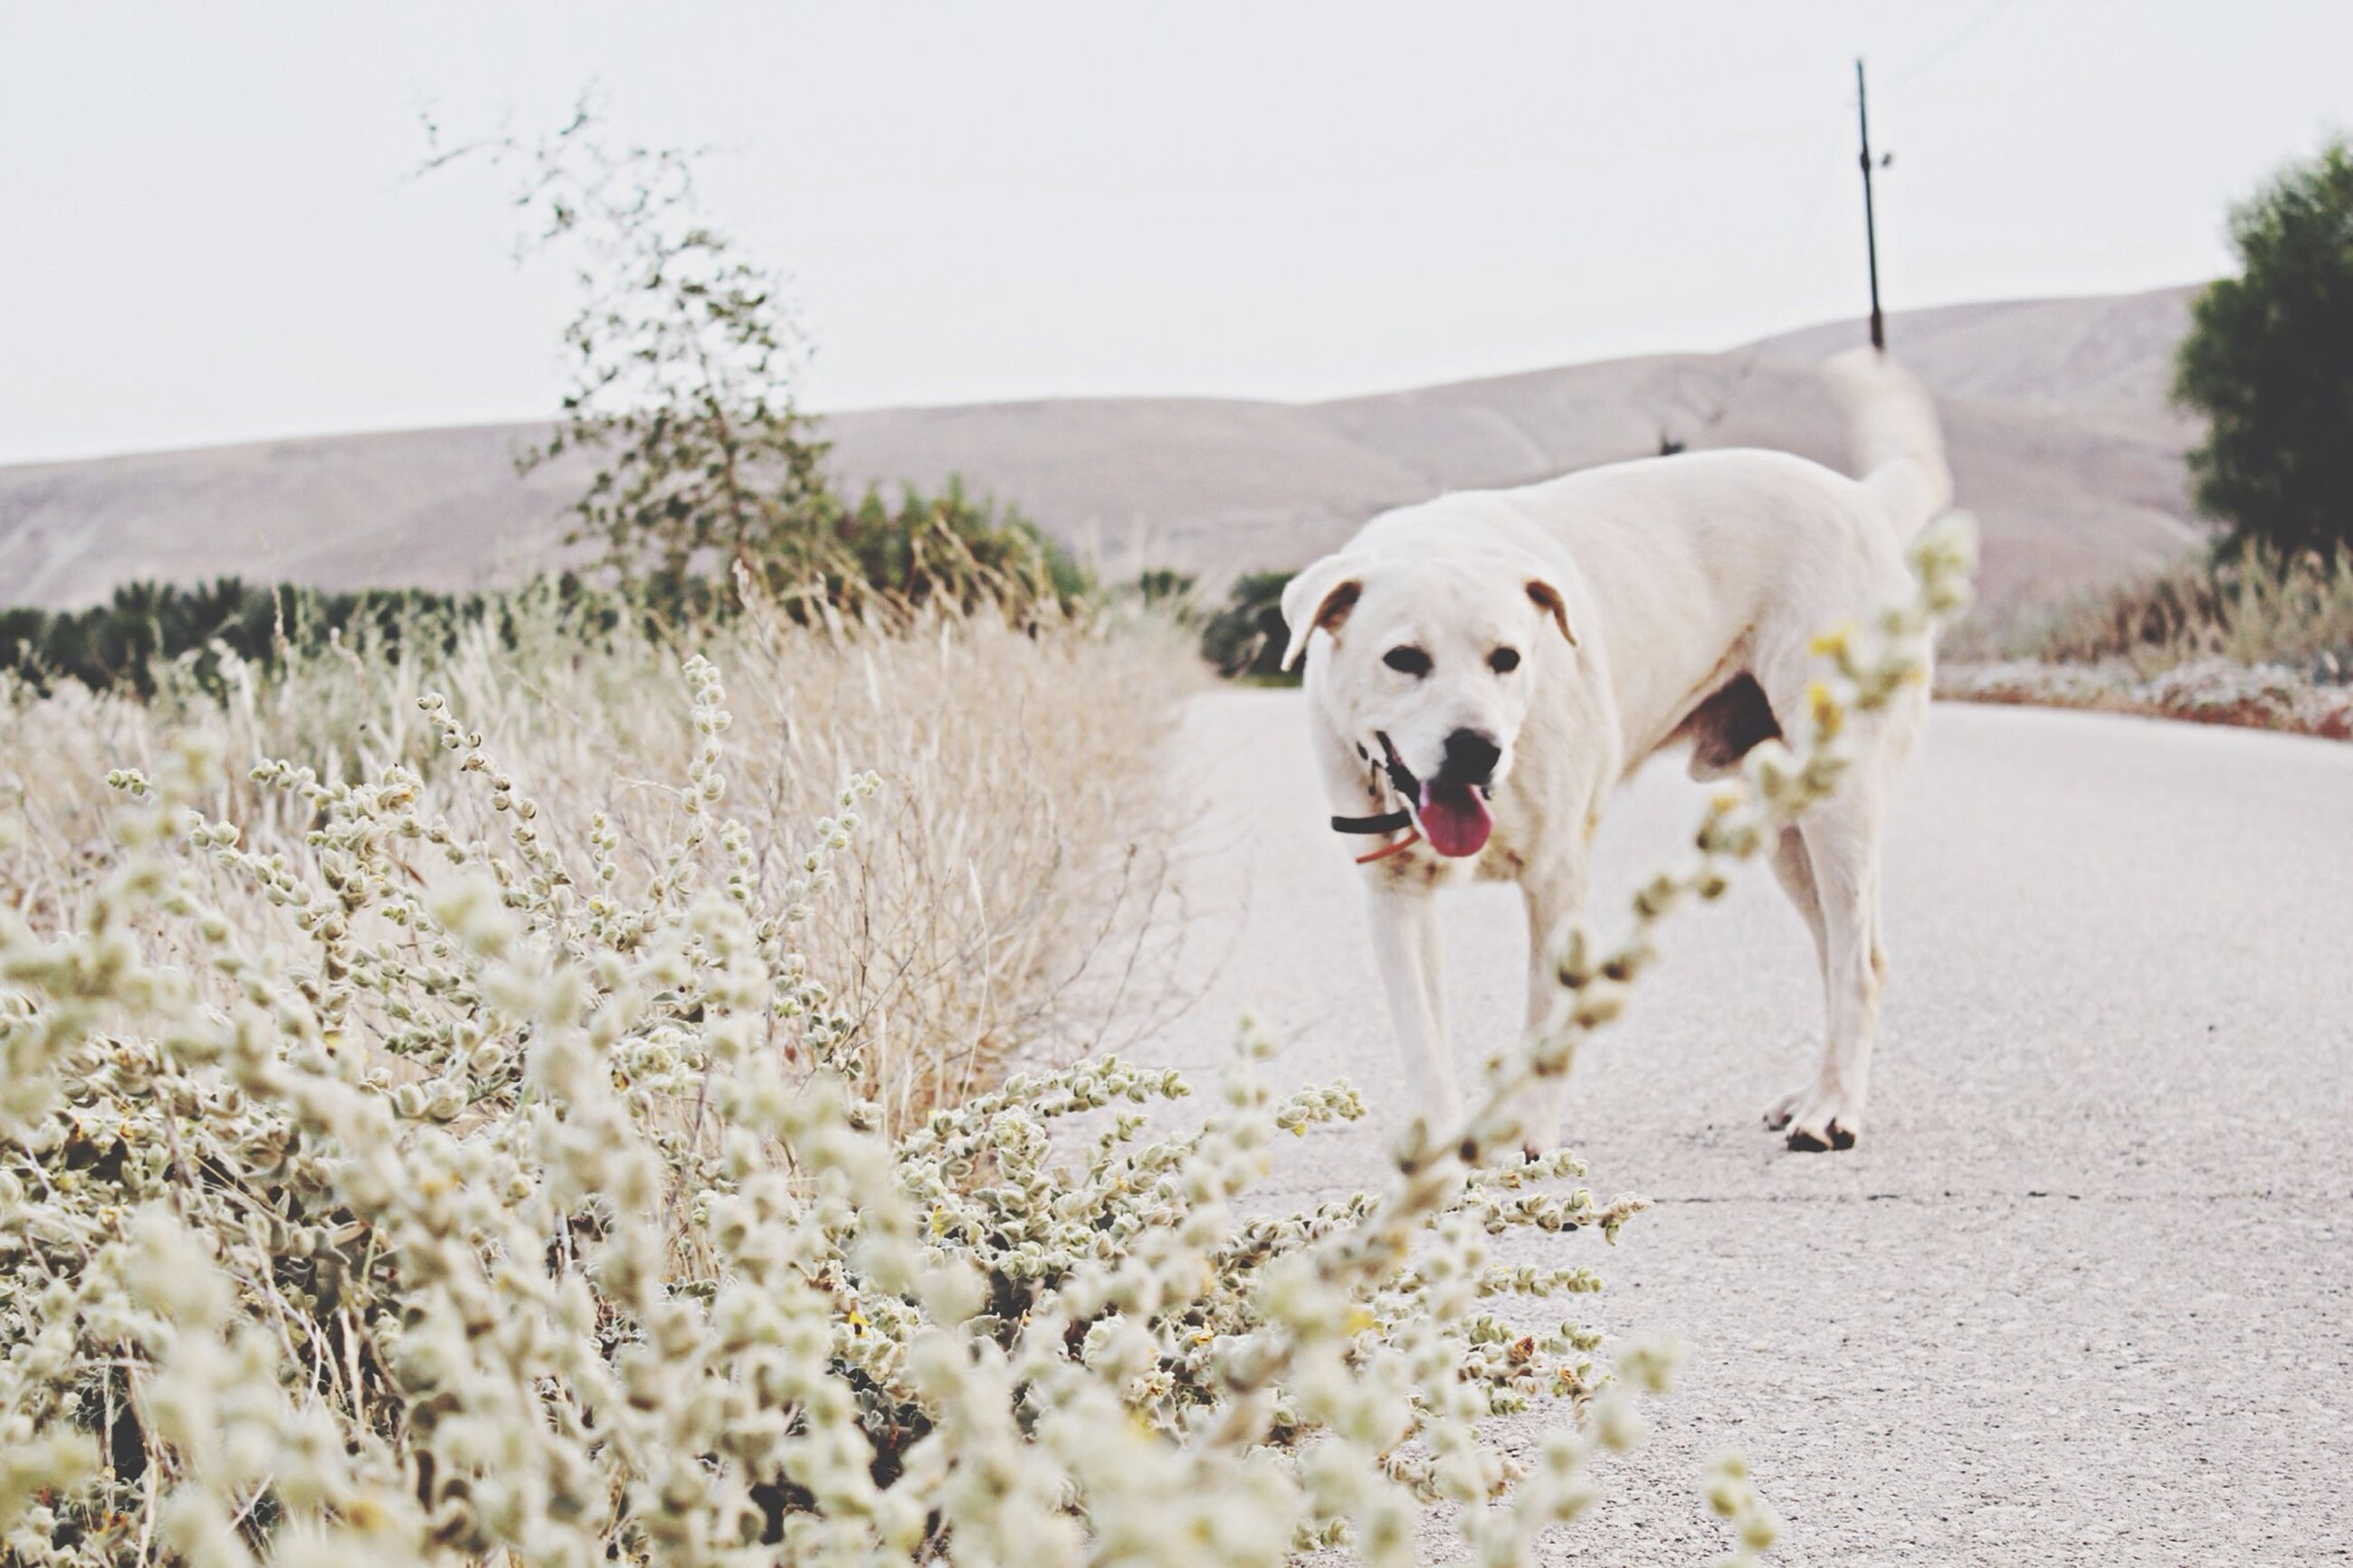 domestic animals, animal themes, mammal, dog, one animal, pets, landscape, field, clear sky, white color, grass, nature, sky, tree, day, outdoors, road, no people, rural scene, mountain